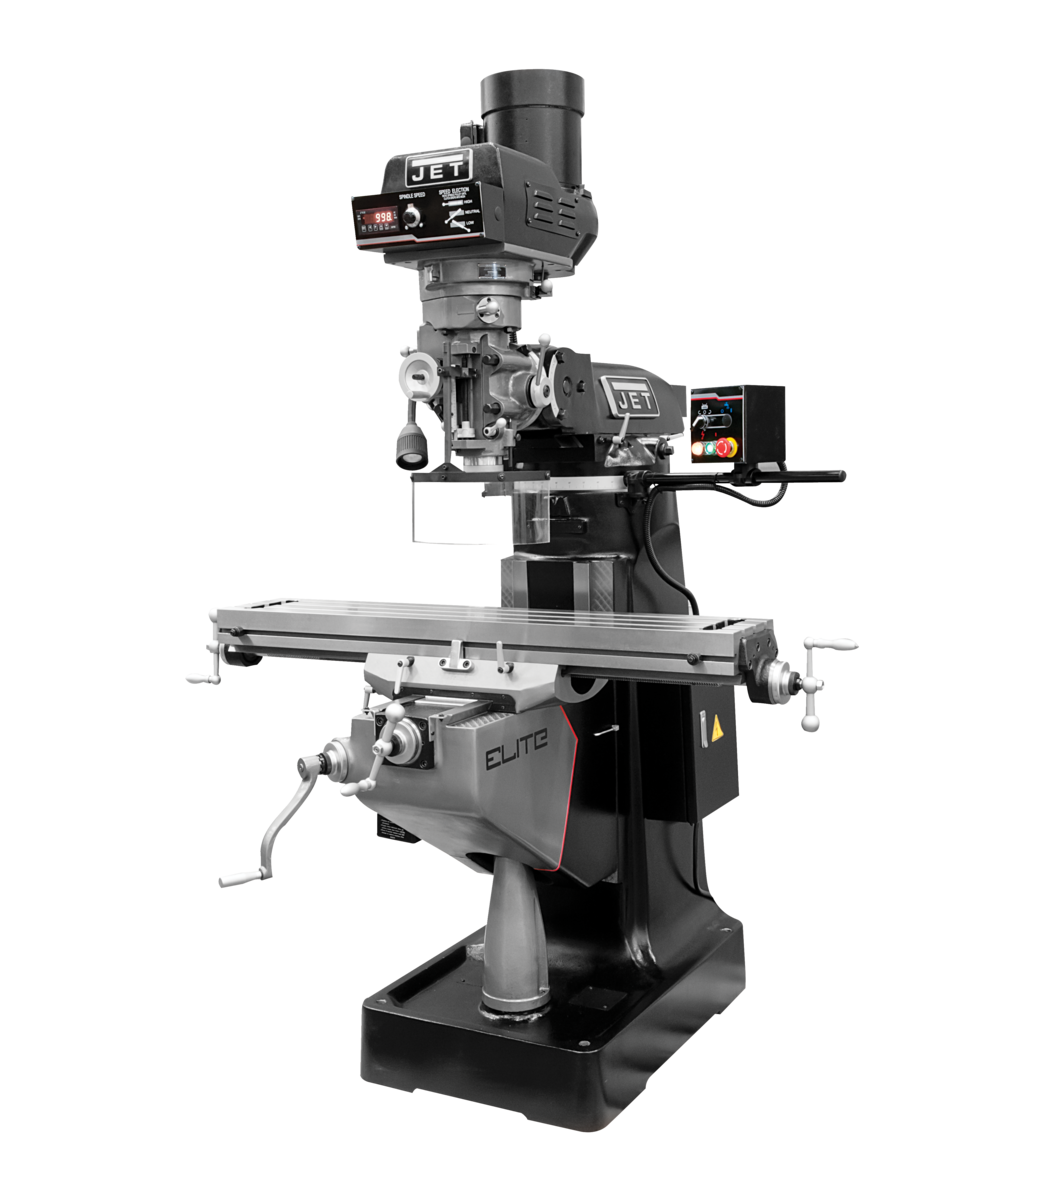 EVS-949 Mill with 3-Axis ACU-RITE 303  (Knee) DRO and X, Y, Z-Axis JET Powerfeeds